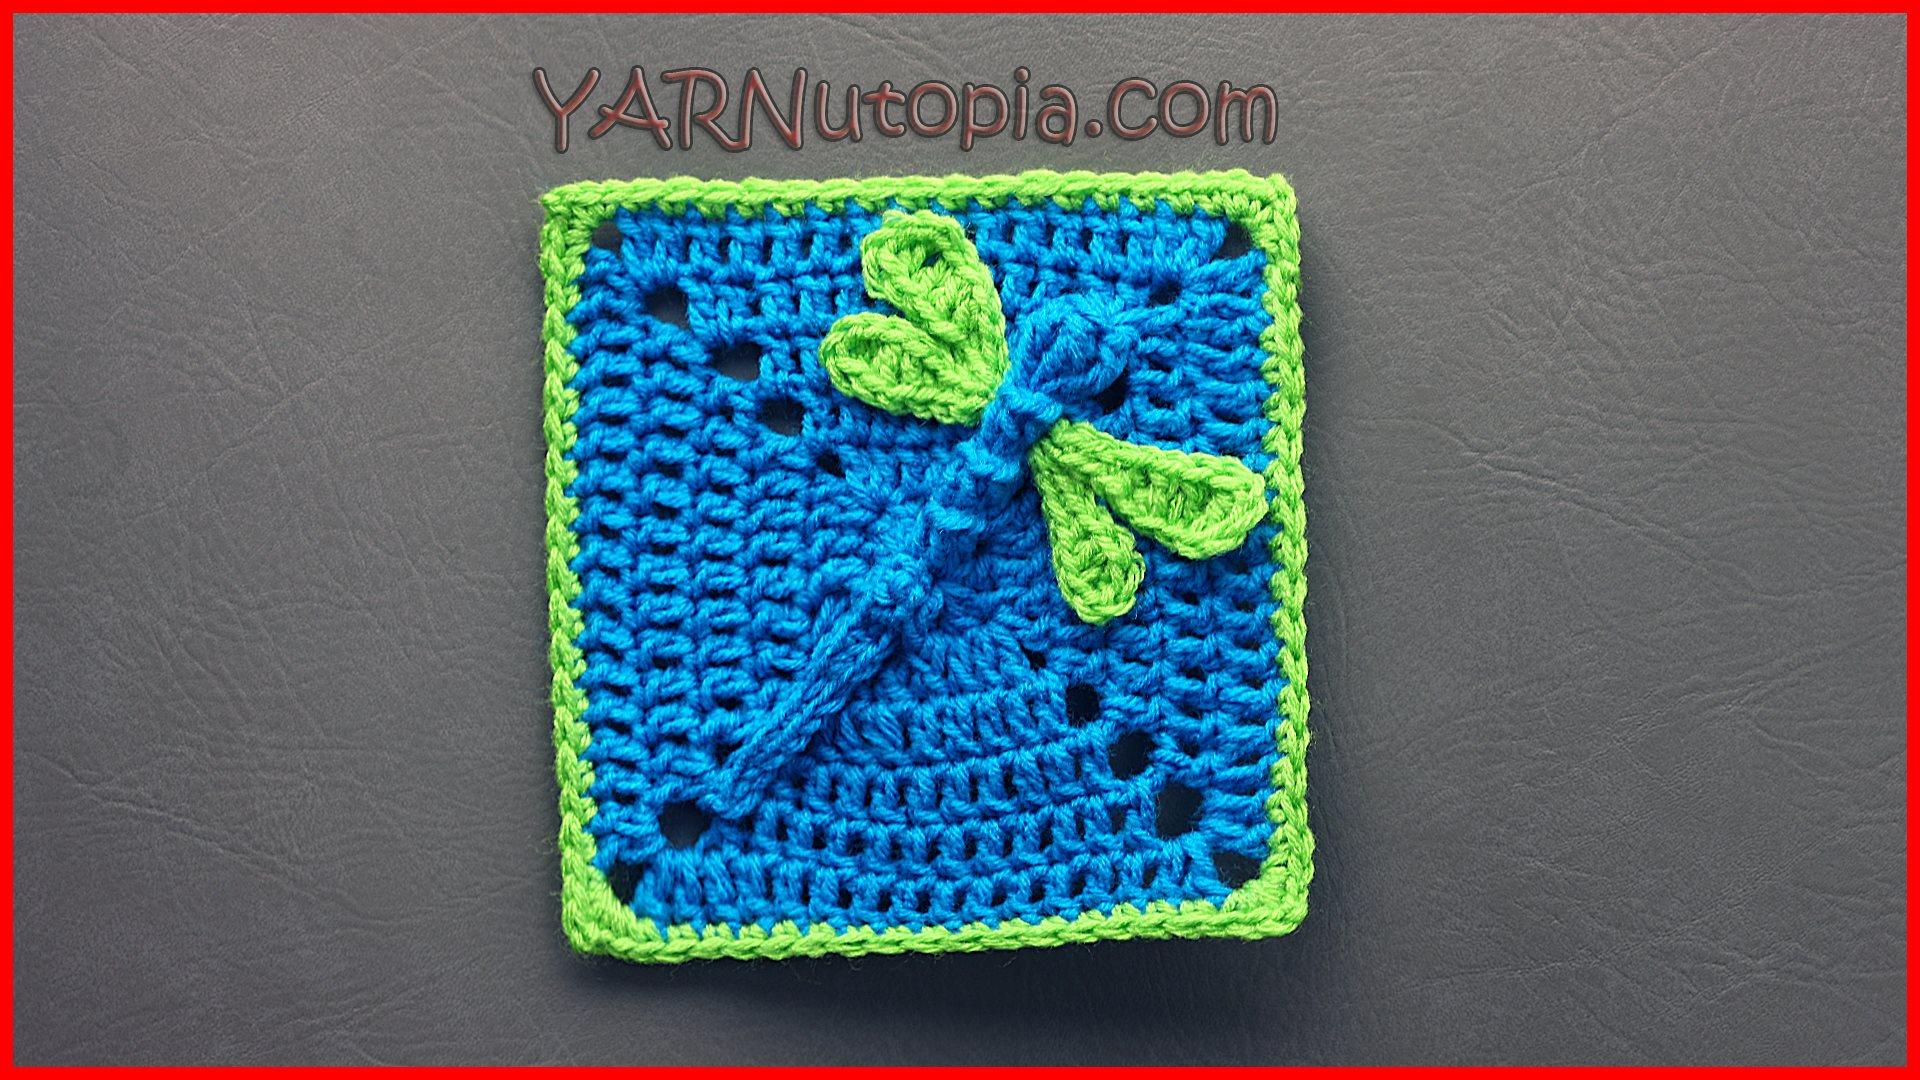 Crochet Tutorial: Dazzling Dragonfly Granny Square